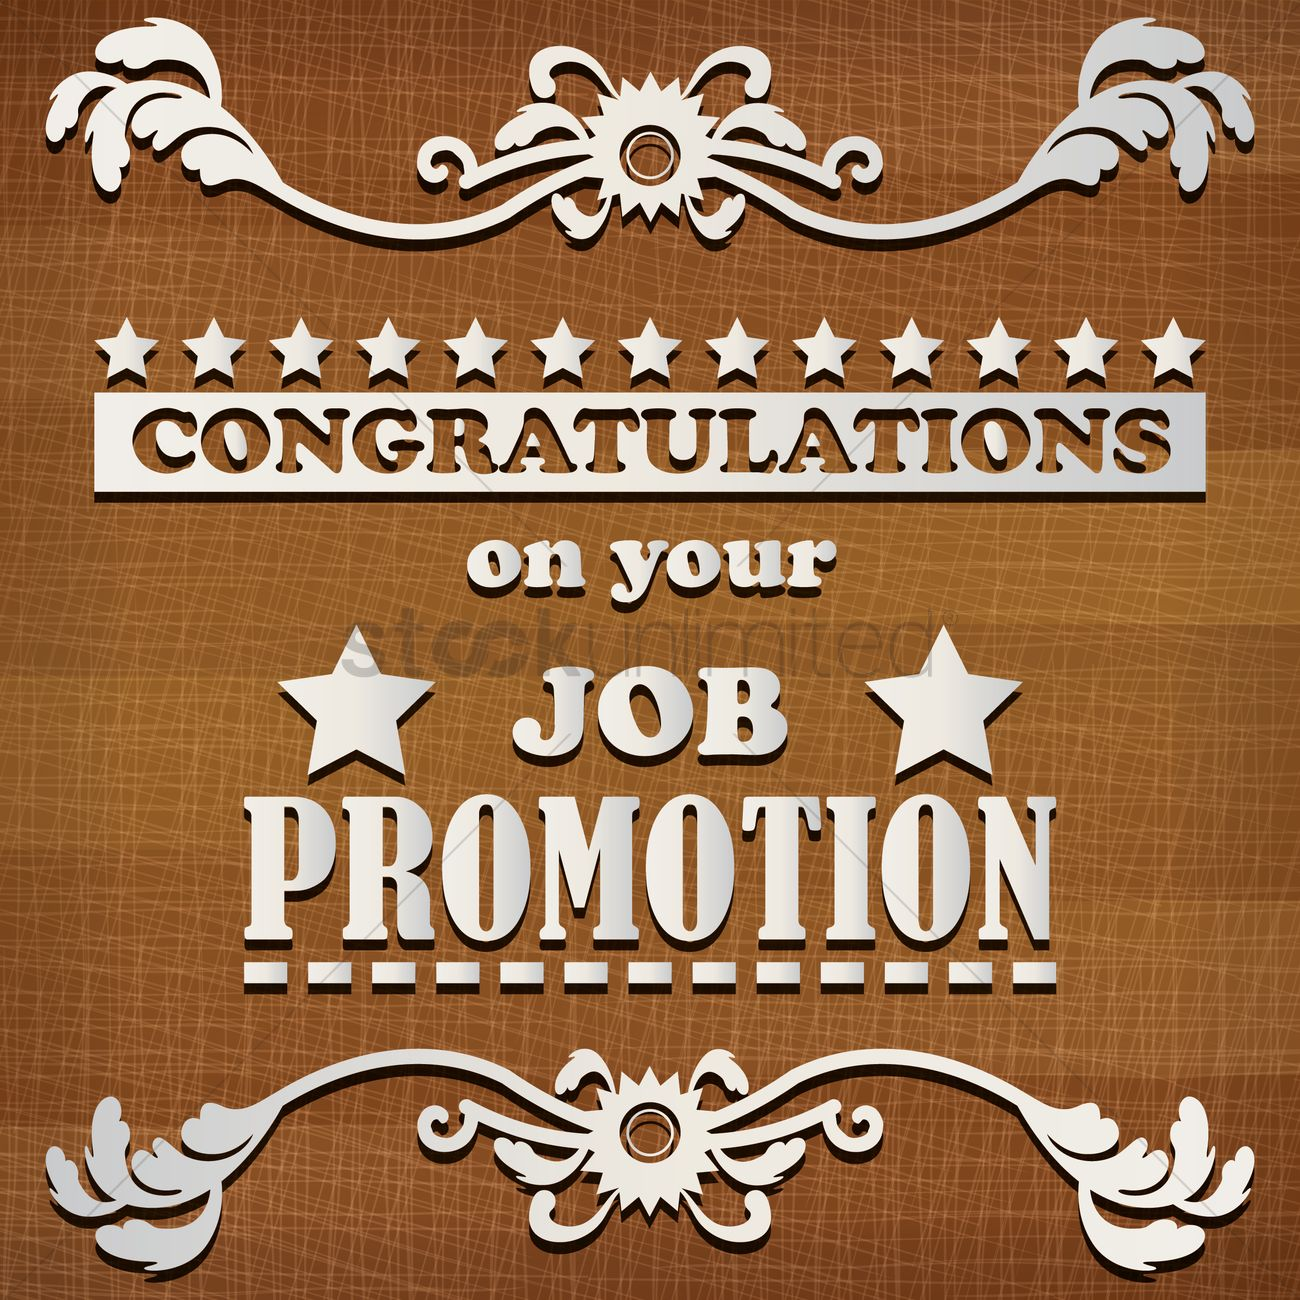 Congratulations on your promotion images